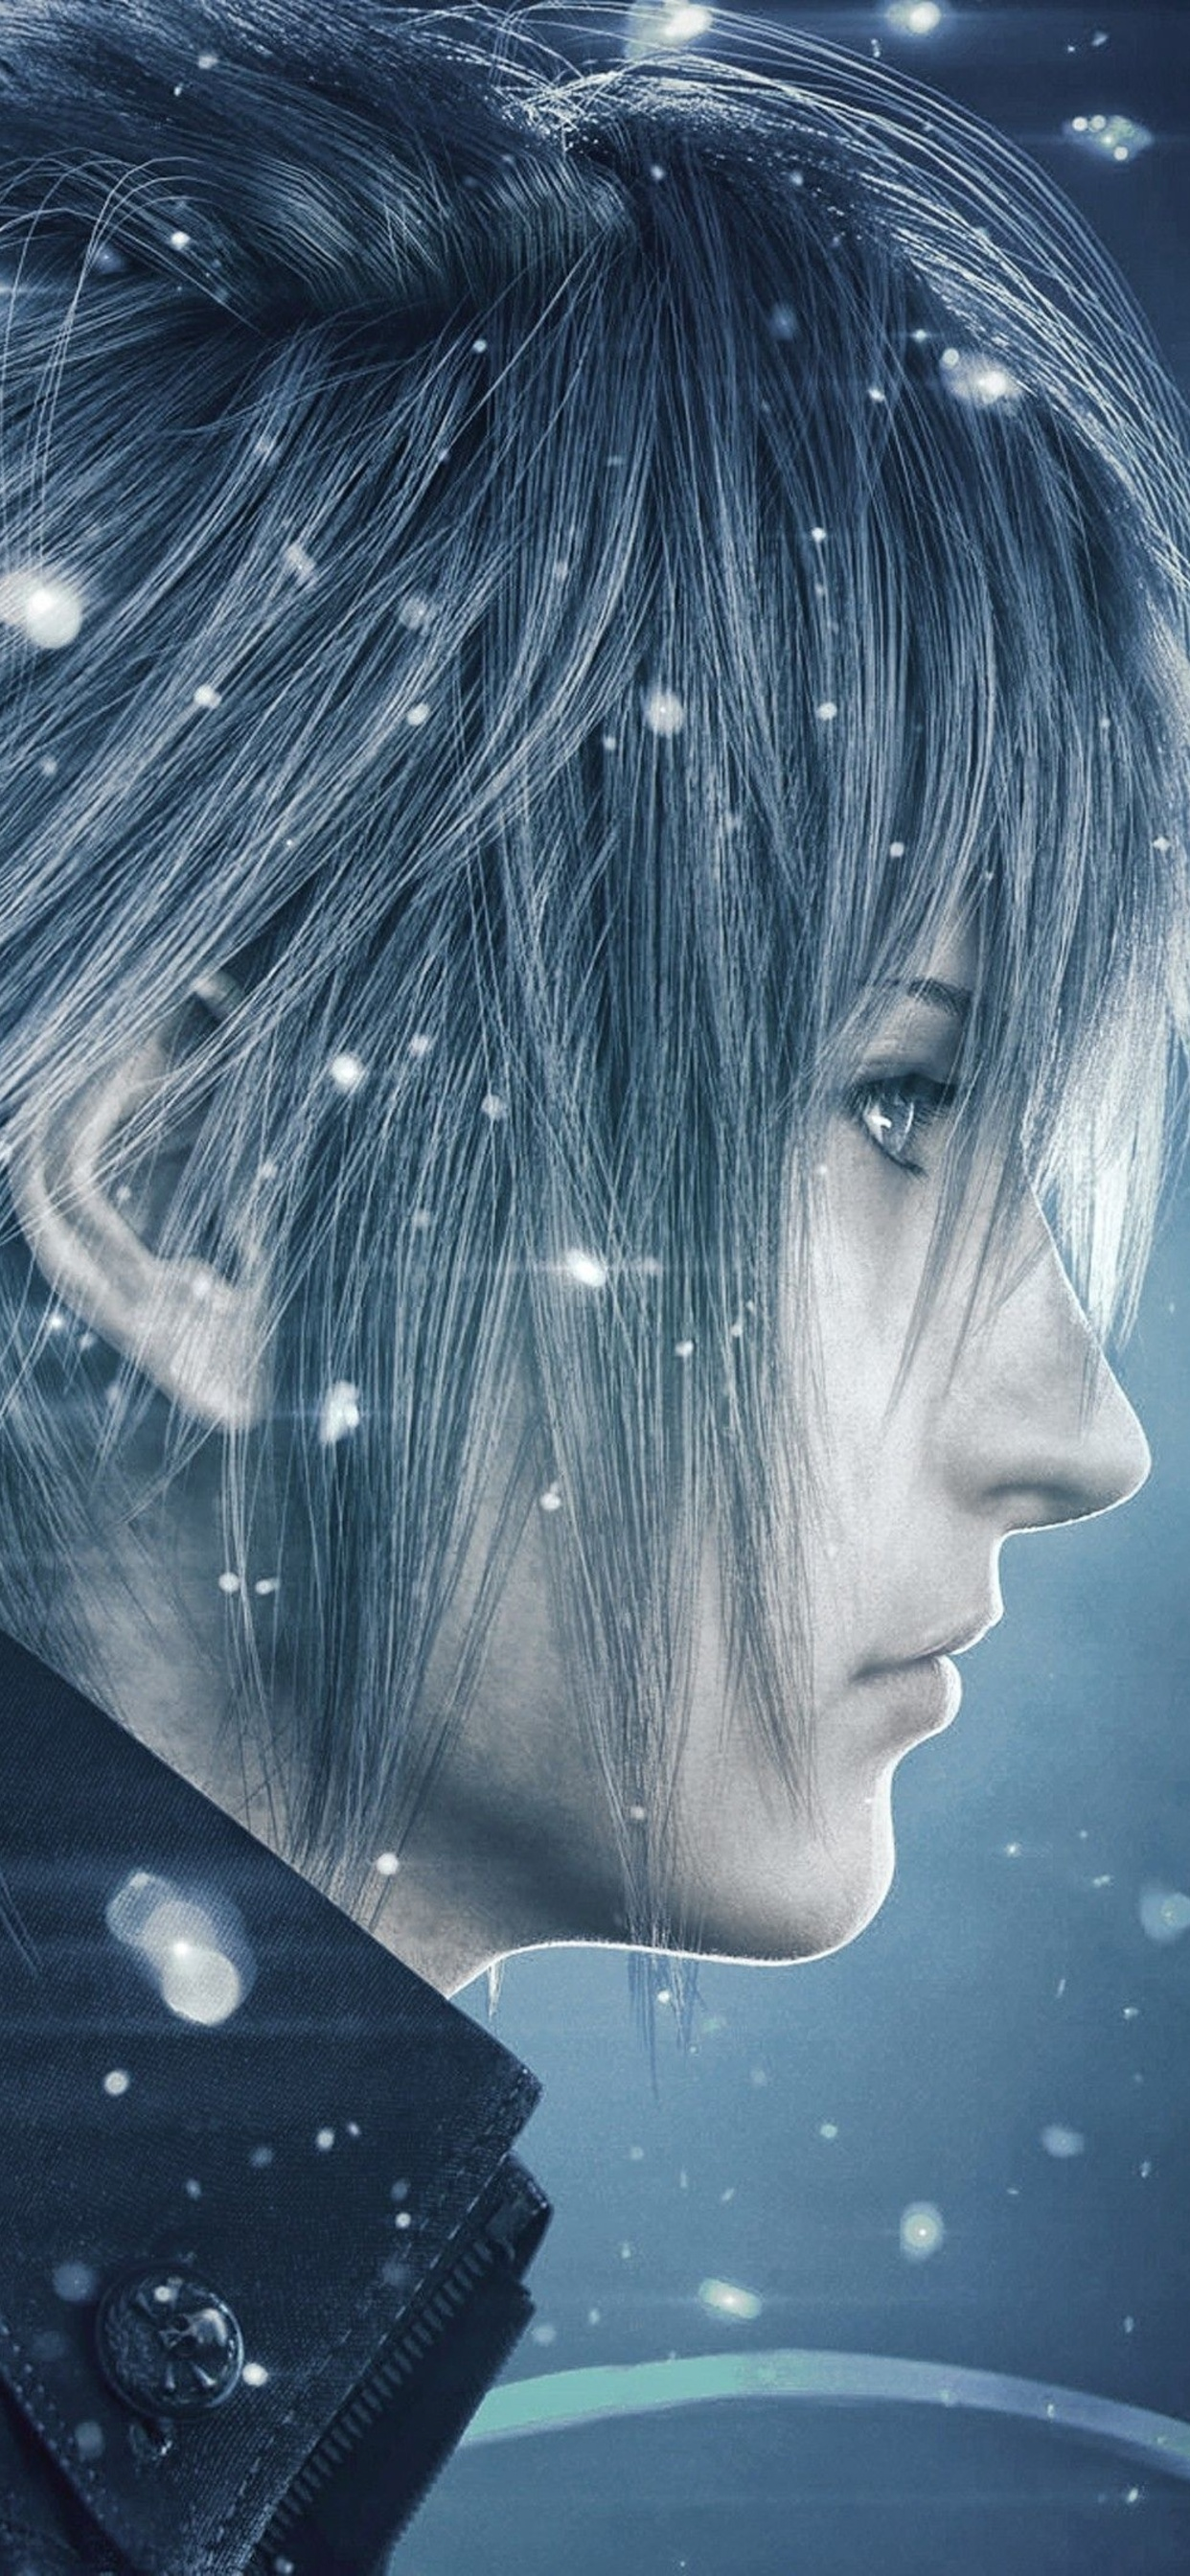 1242x2688 final fantasy xv noctis iphone xs max hd 4k wallpapers